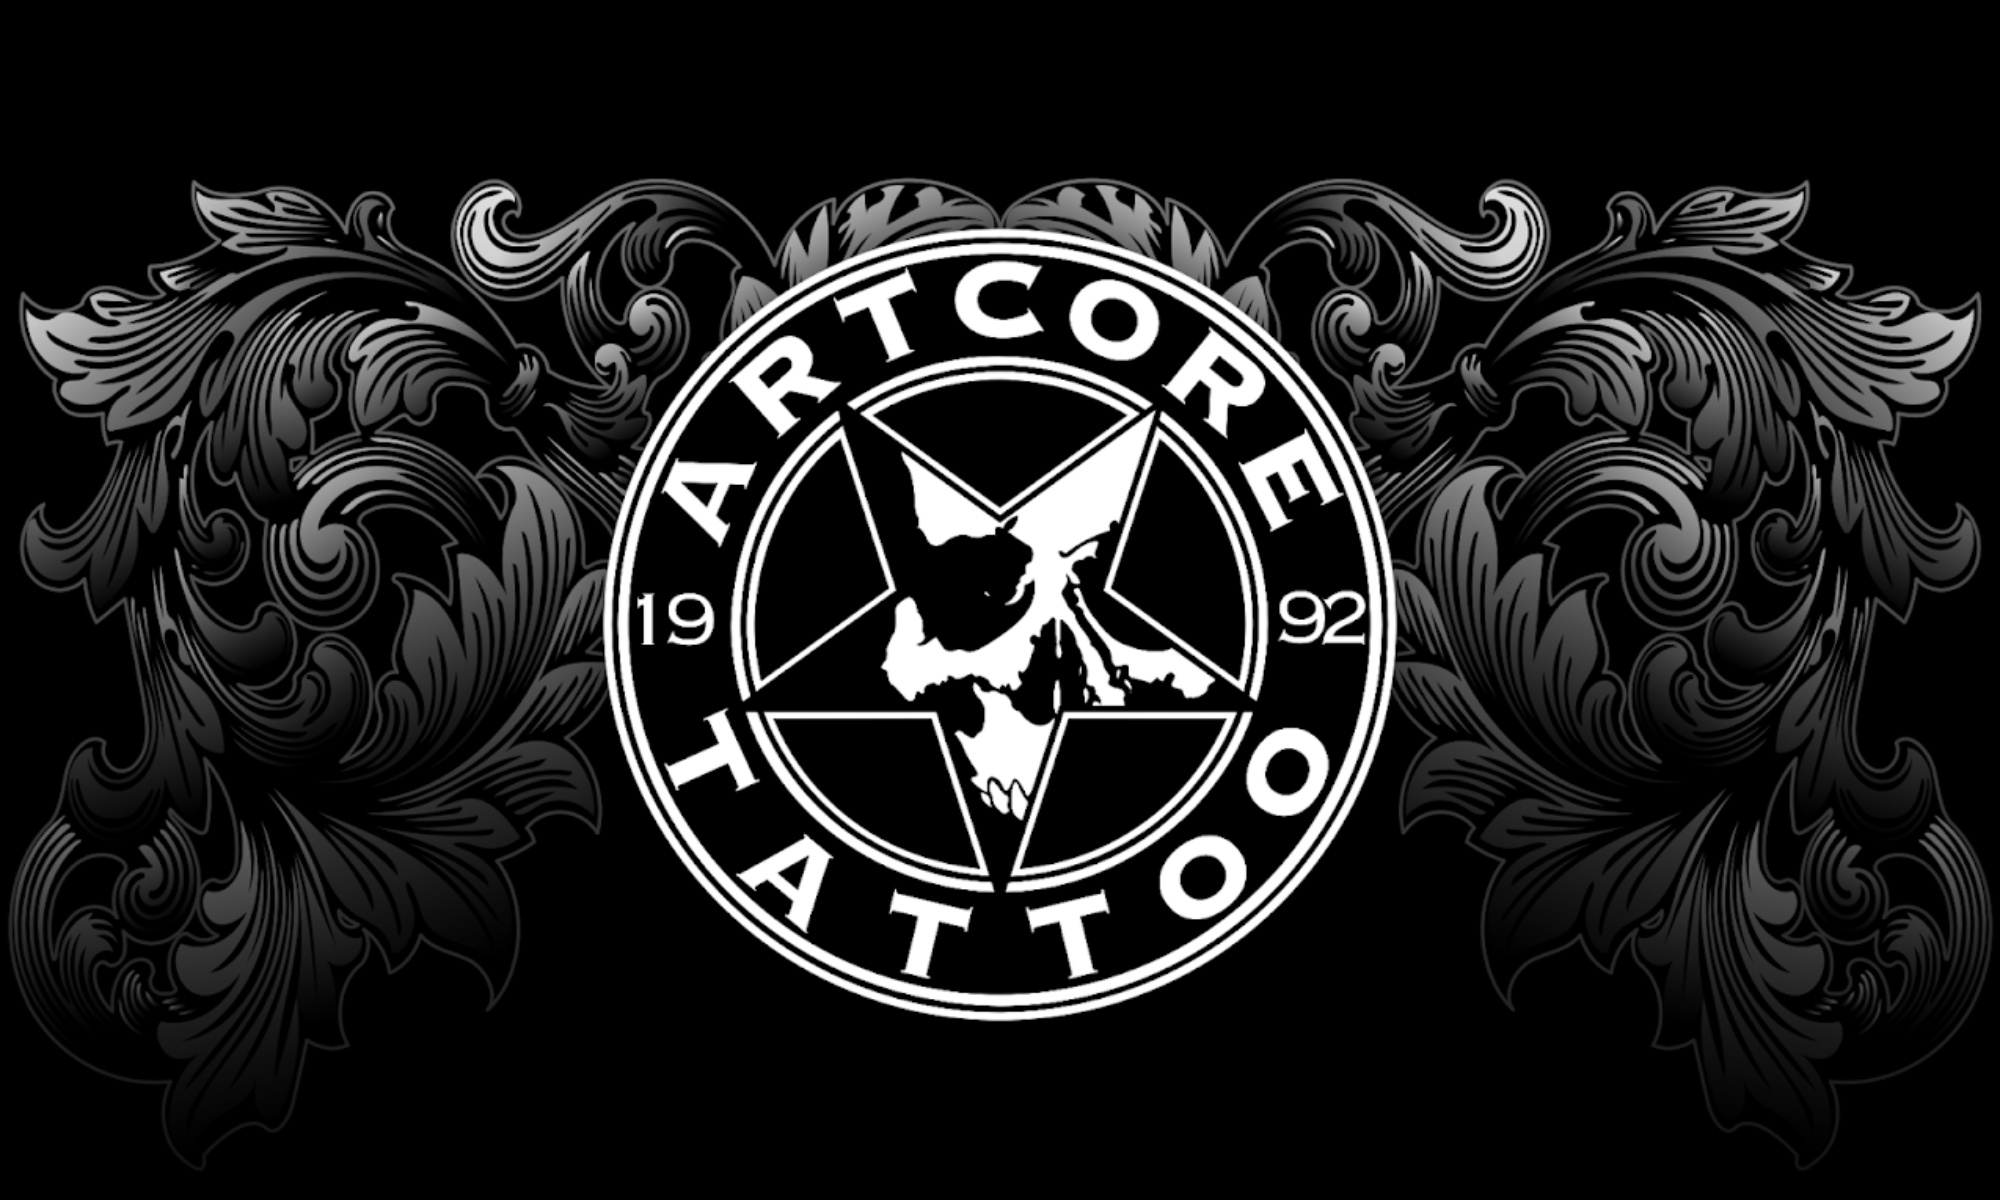 Artcore Tattoo